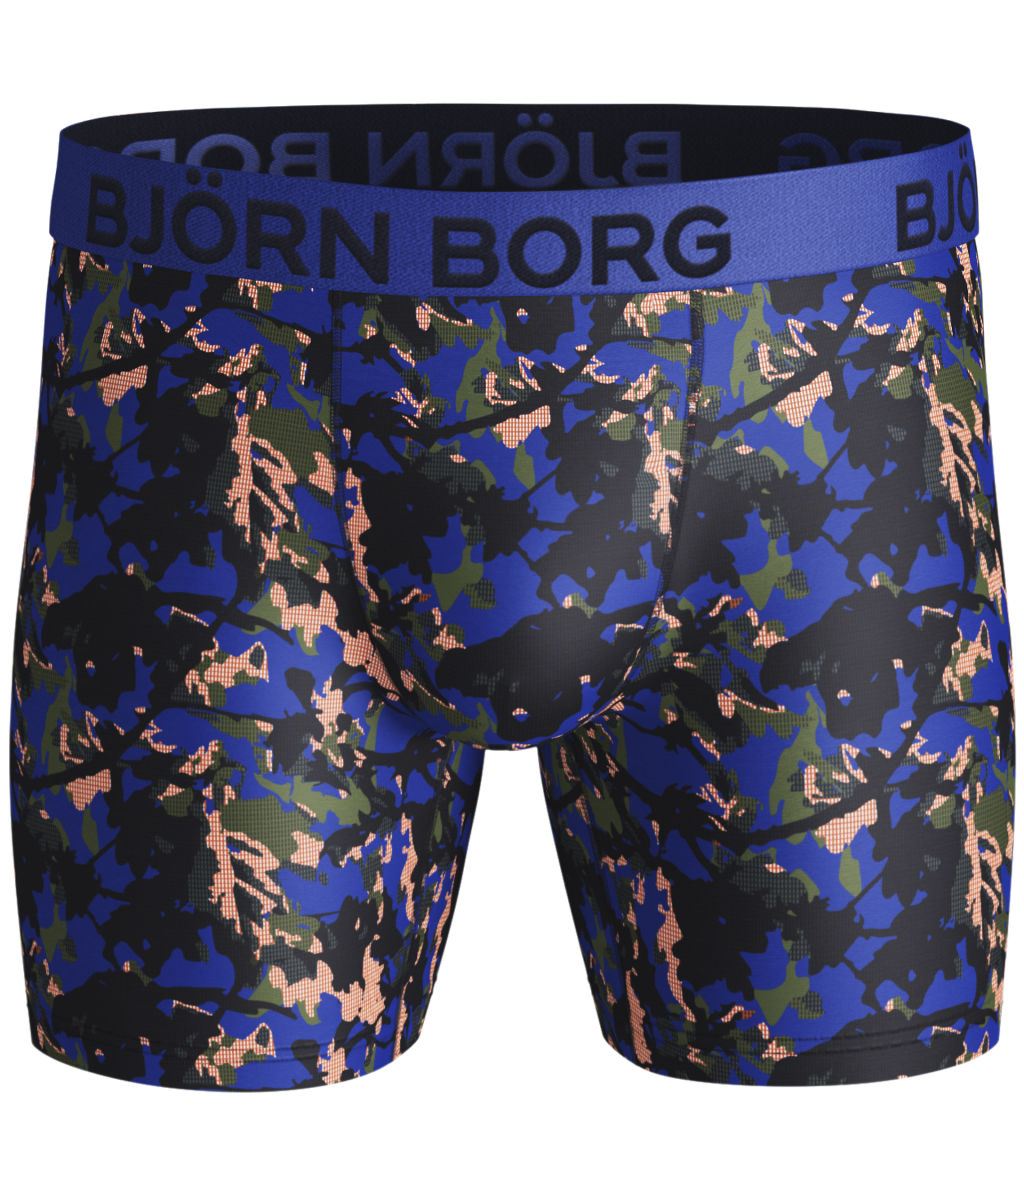 Björn Borg Branch Performance Shorts